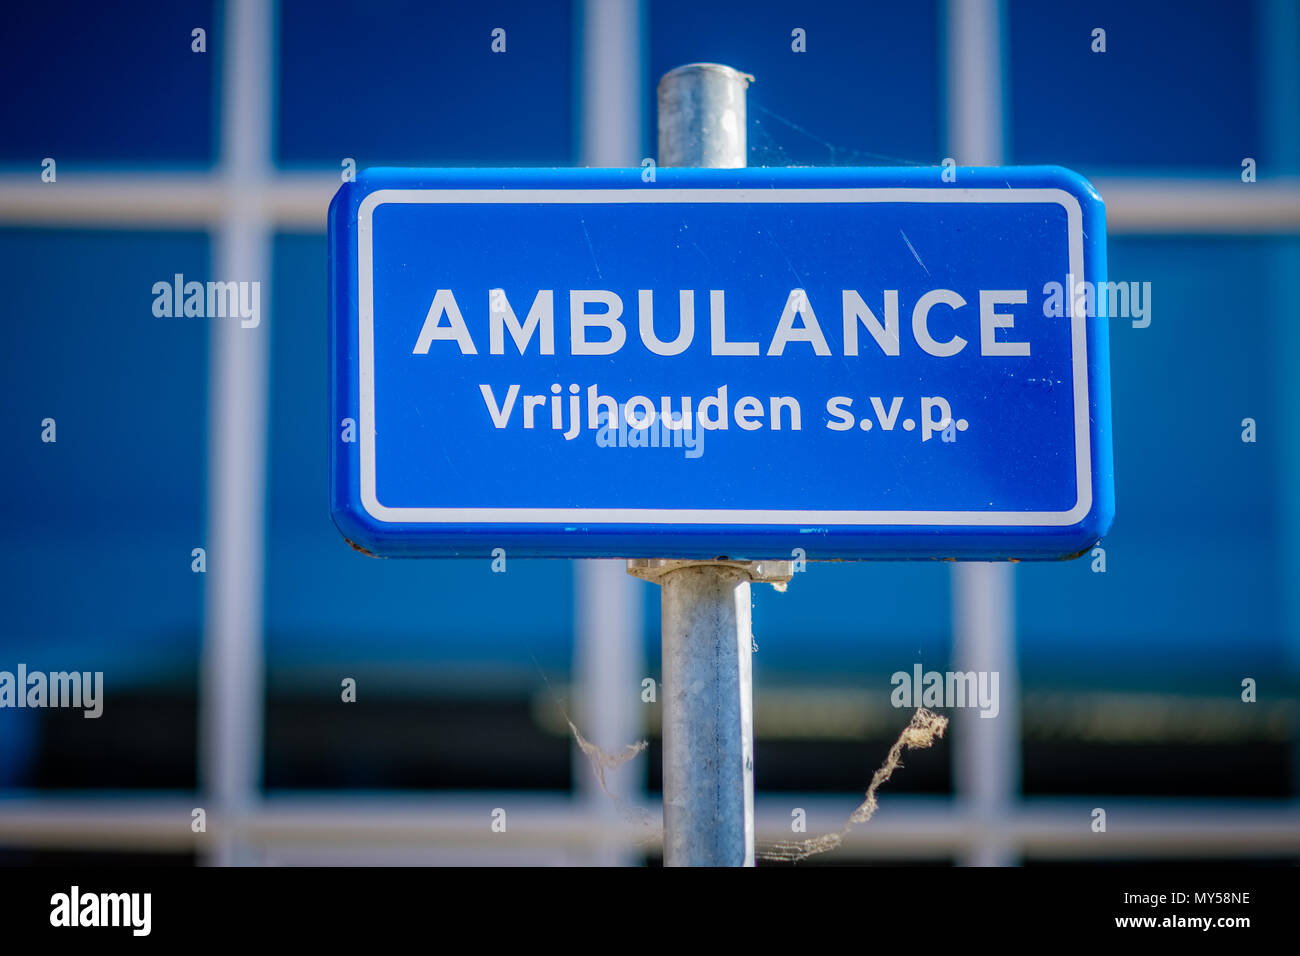 This sign near a Dutch public building prohibits parking at this space, at all times it has to be kept clear because it is in use by an ambulance. - Stock Image